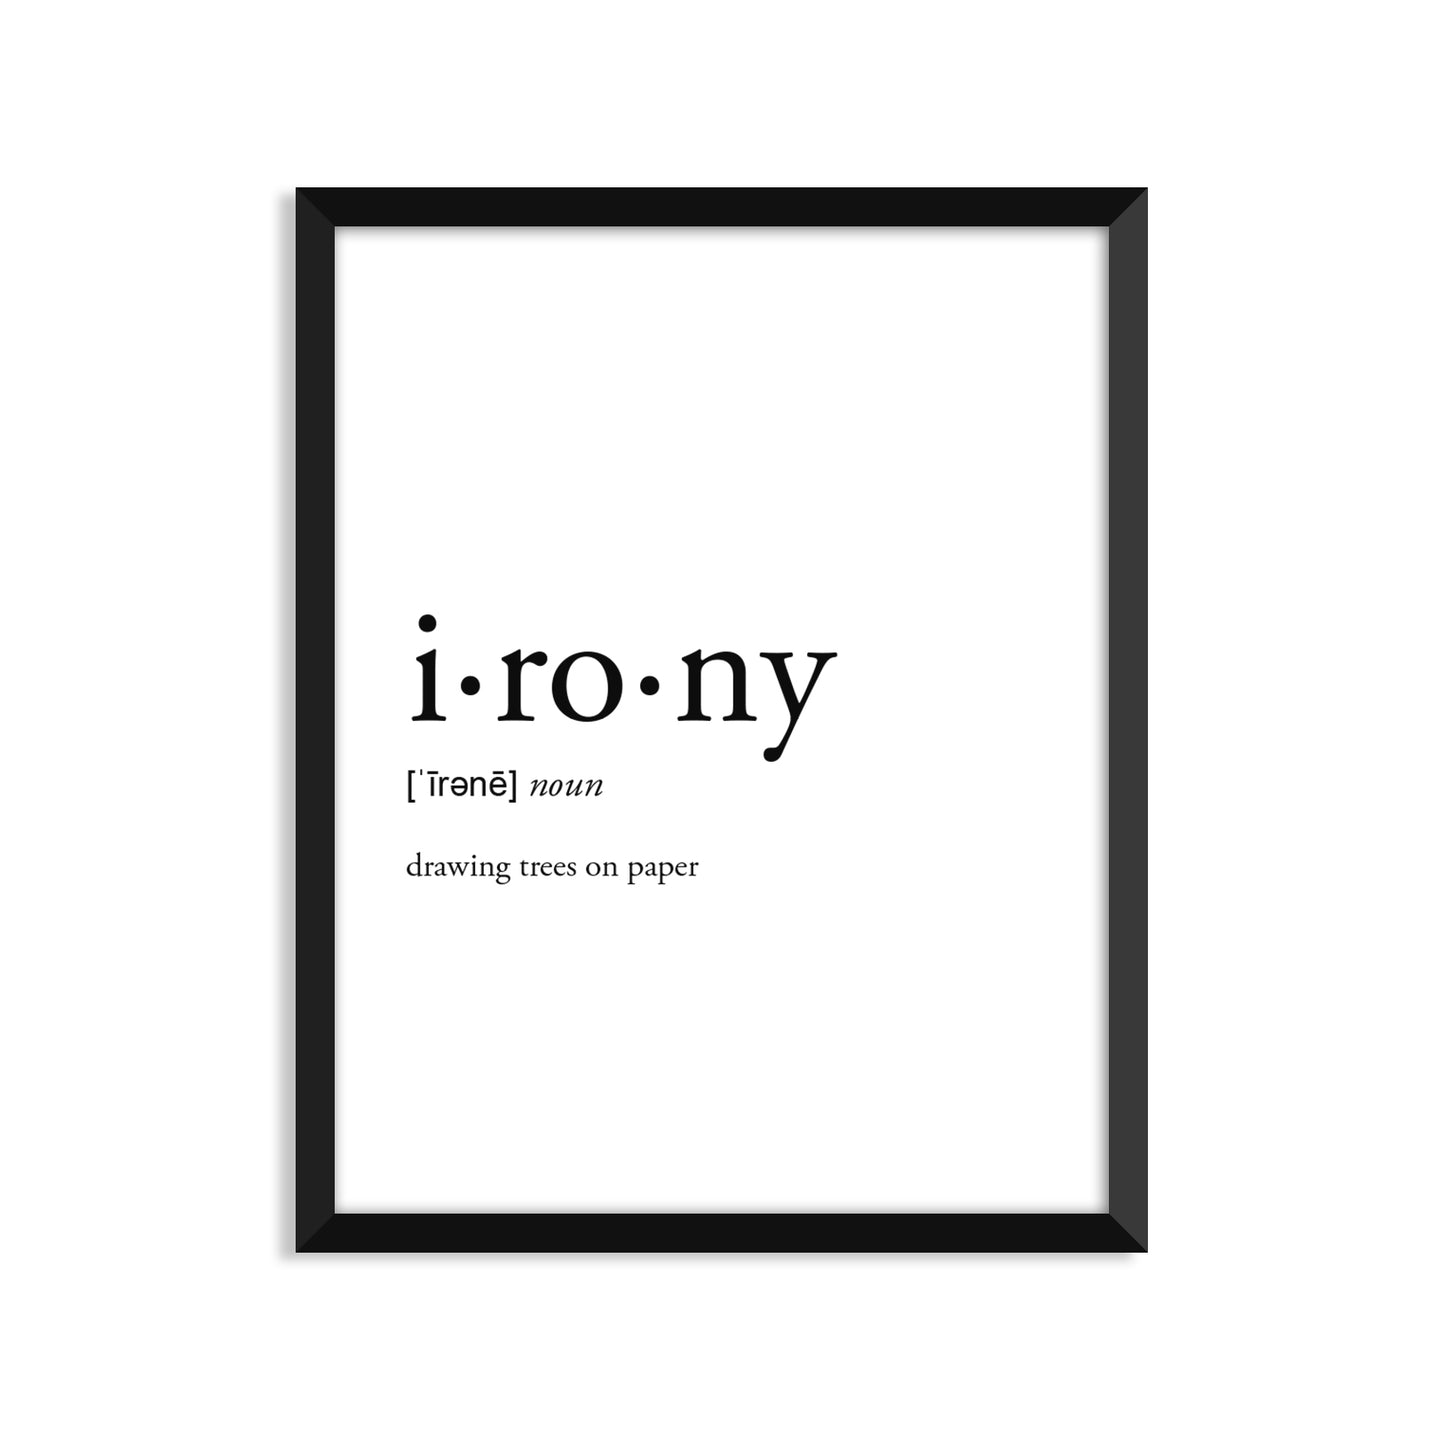 Irony Definition - Unframed Art Print Or Greeting Card